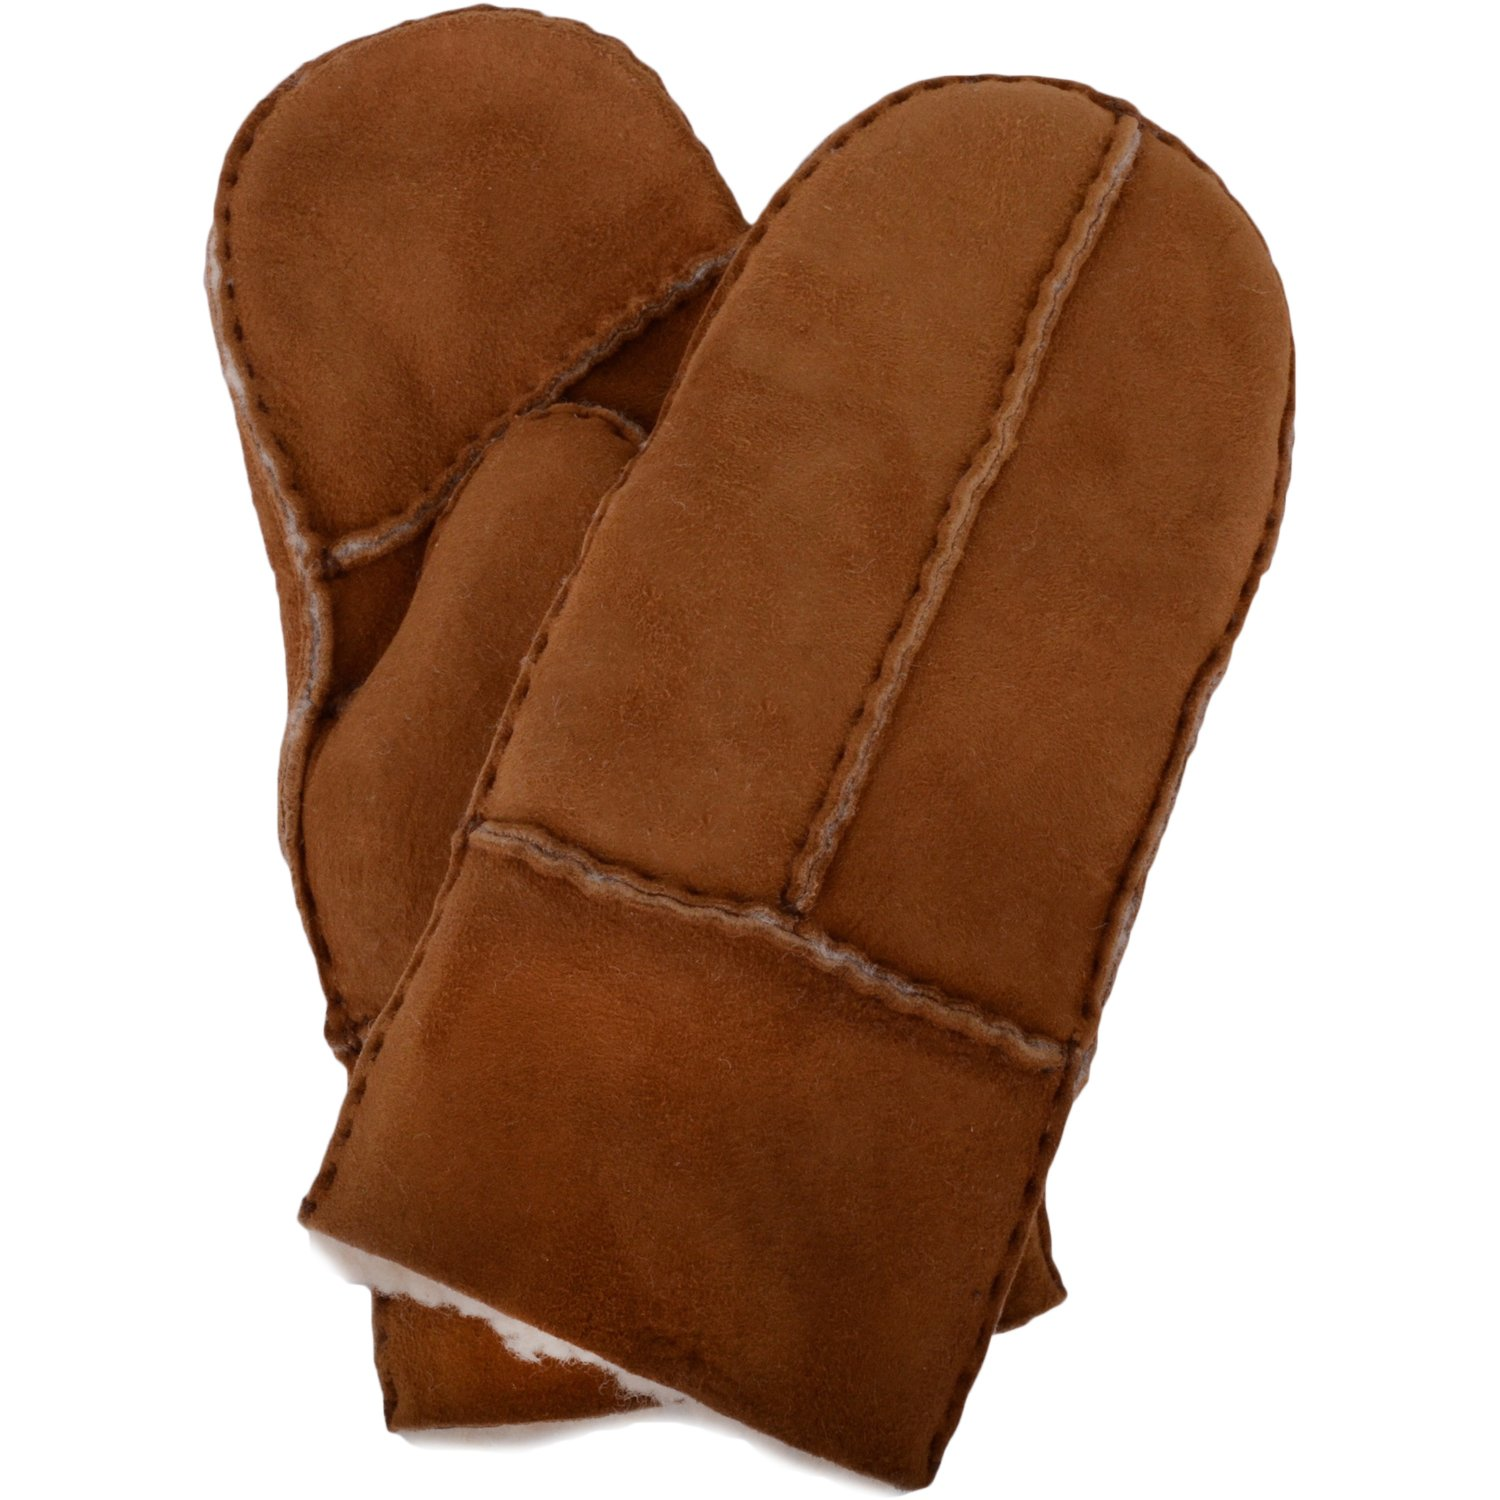 SNUGRUGS Childrens 100% Genuine Soft Sheepskin Mittens/Gloves with Thumb